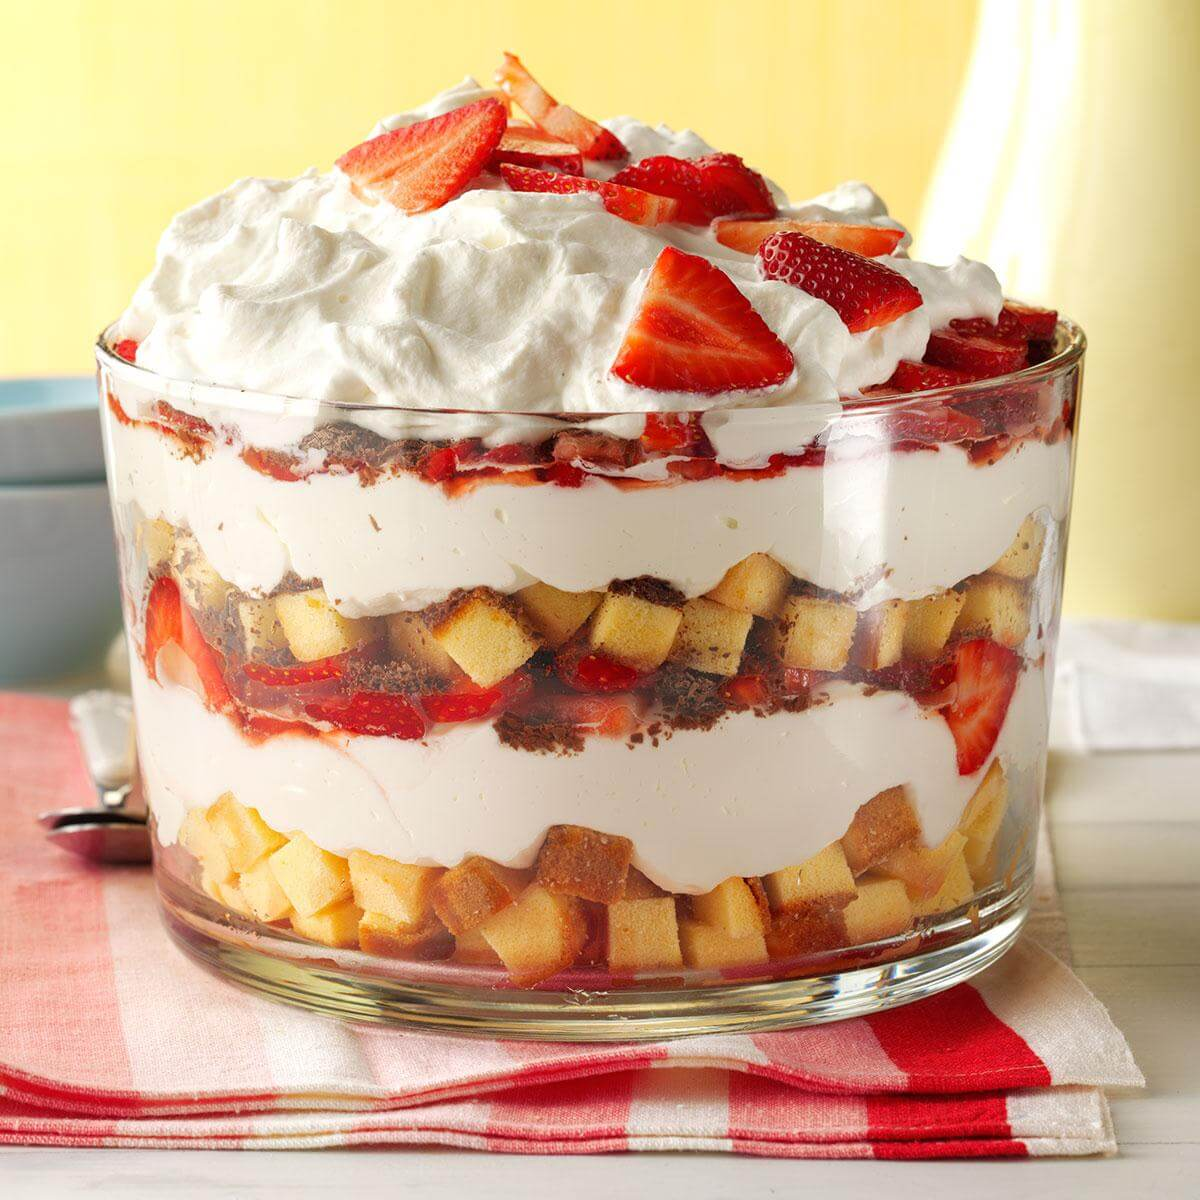 Layered goodness for dessert